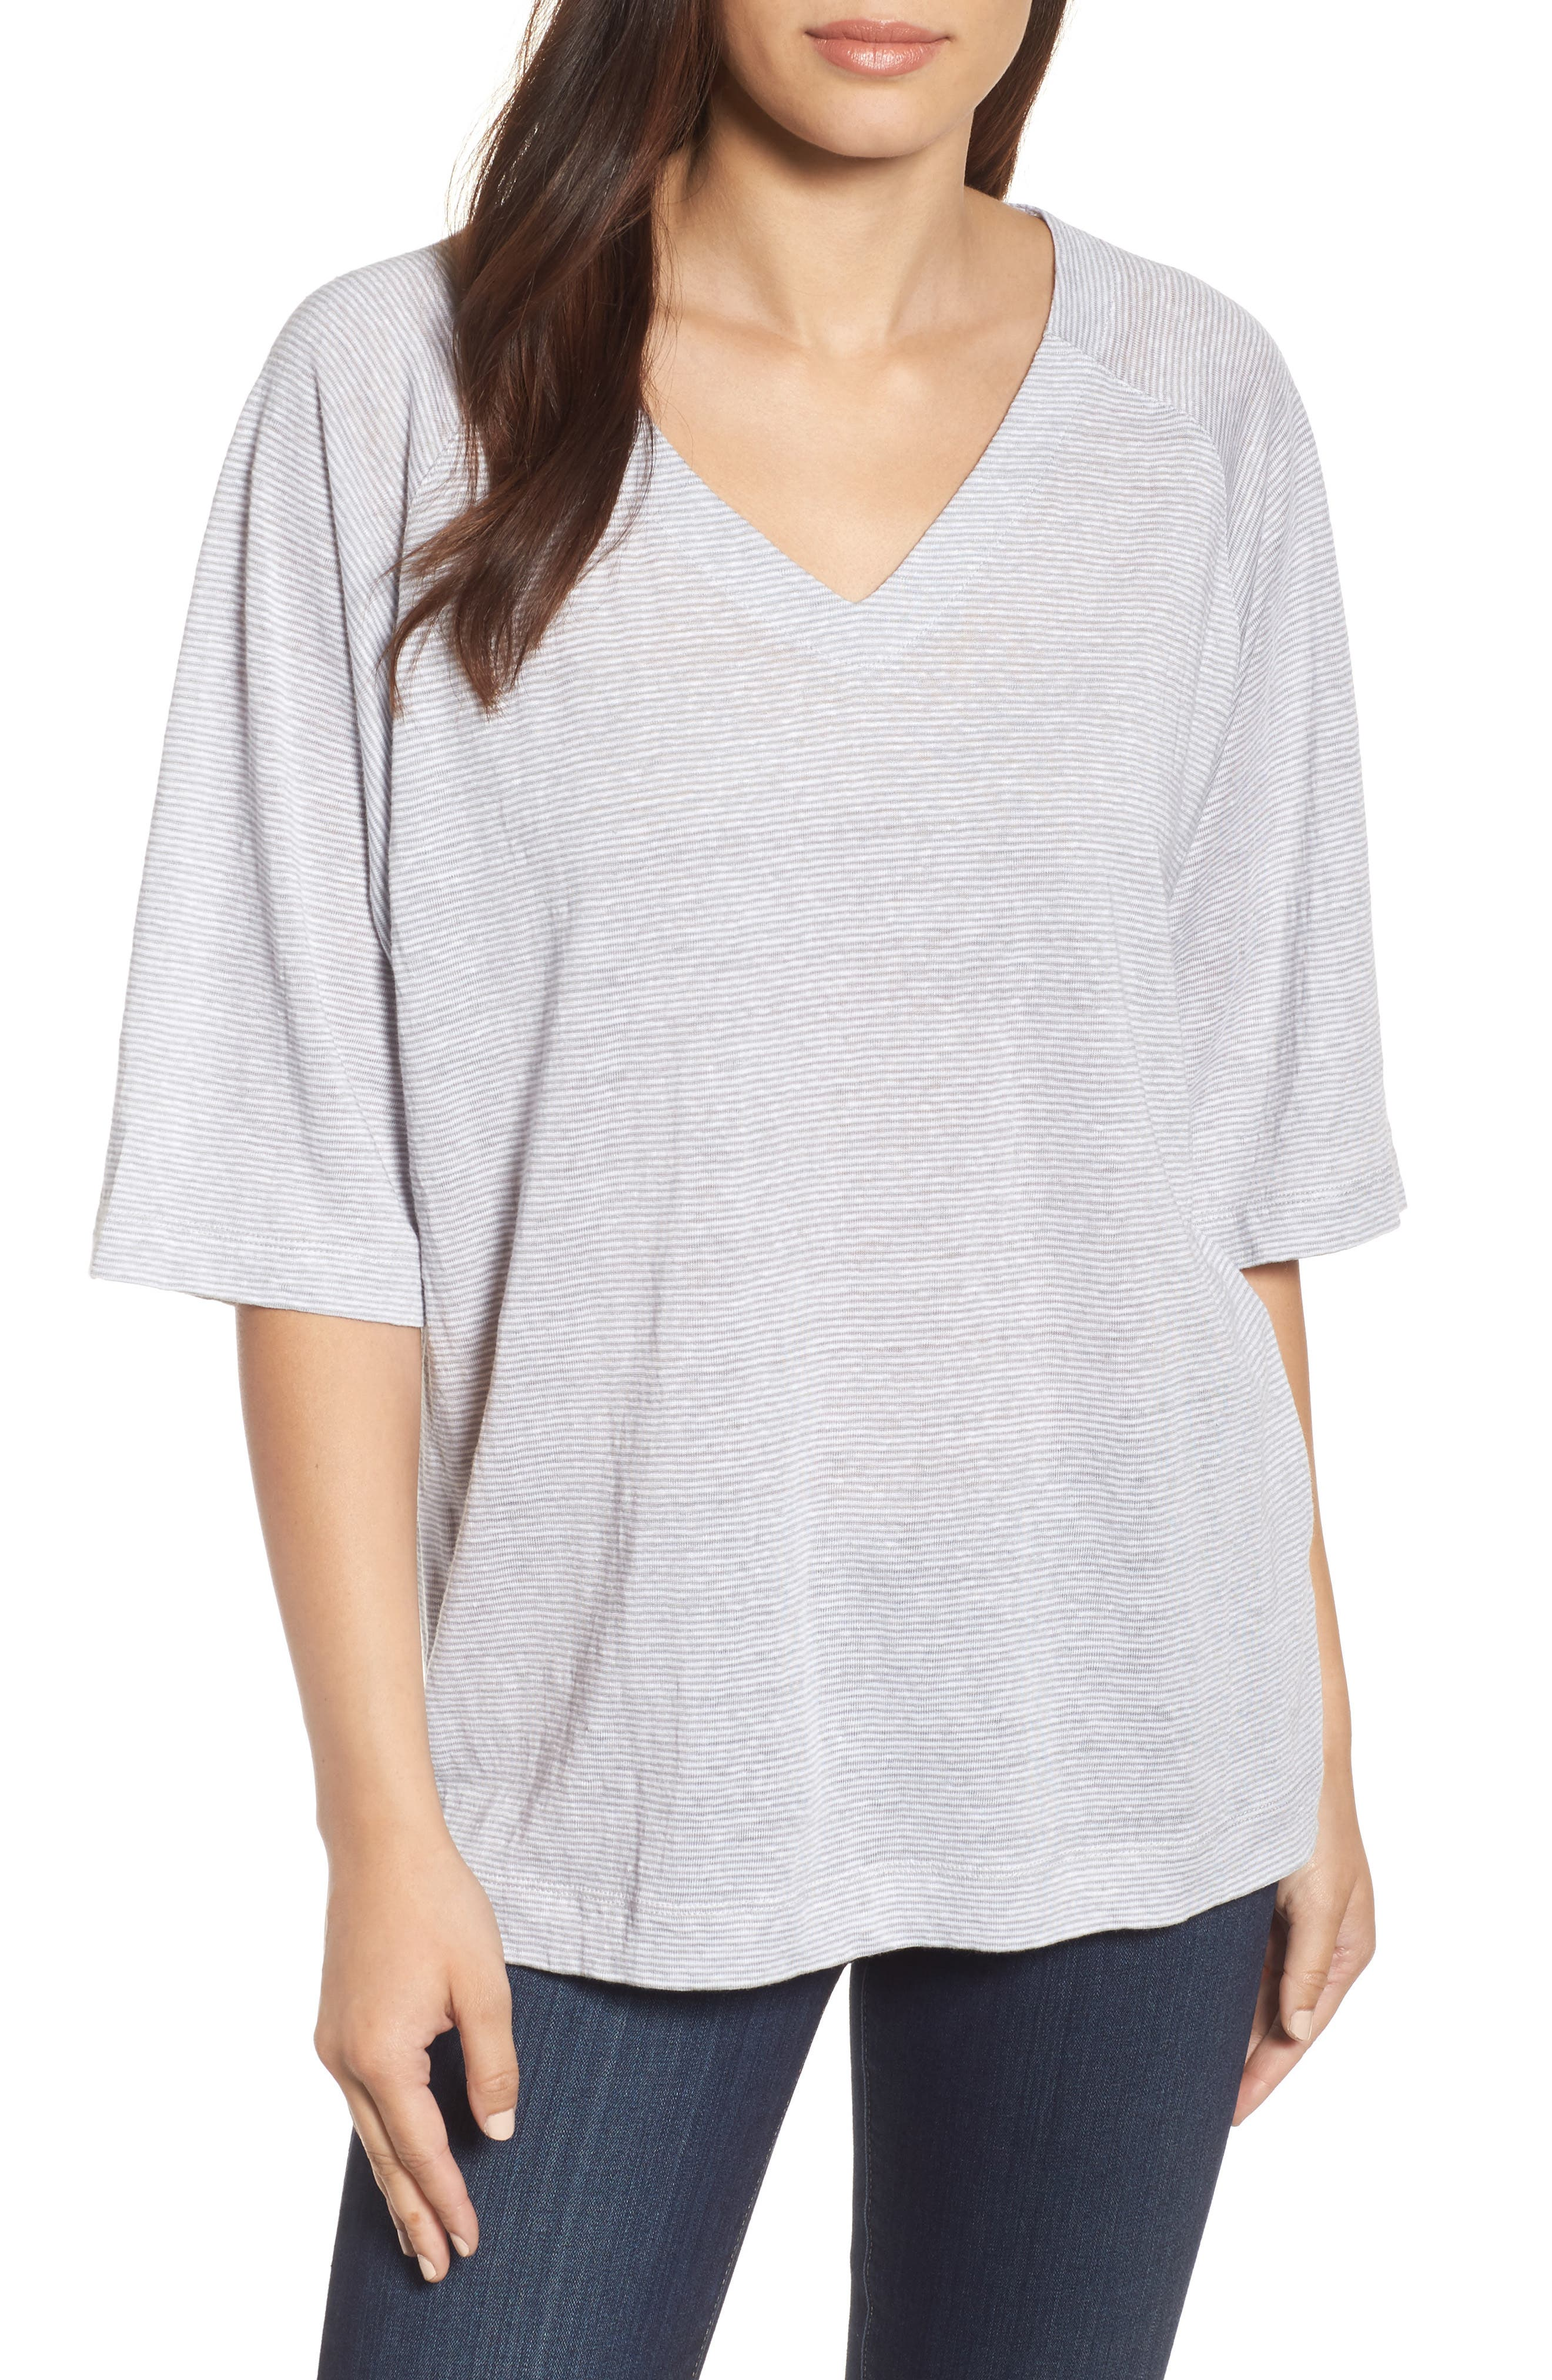 Organic Linen V-Neck Box Tee,                             Main thumbnail 1, color,                             022